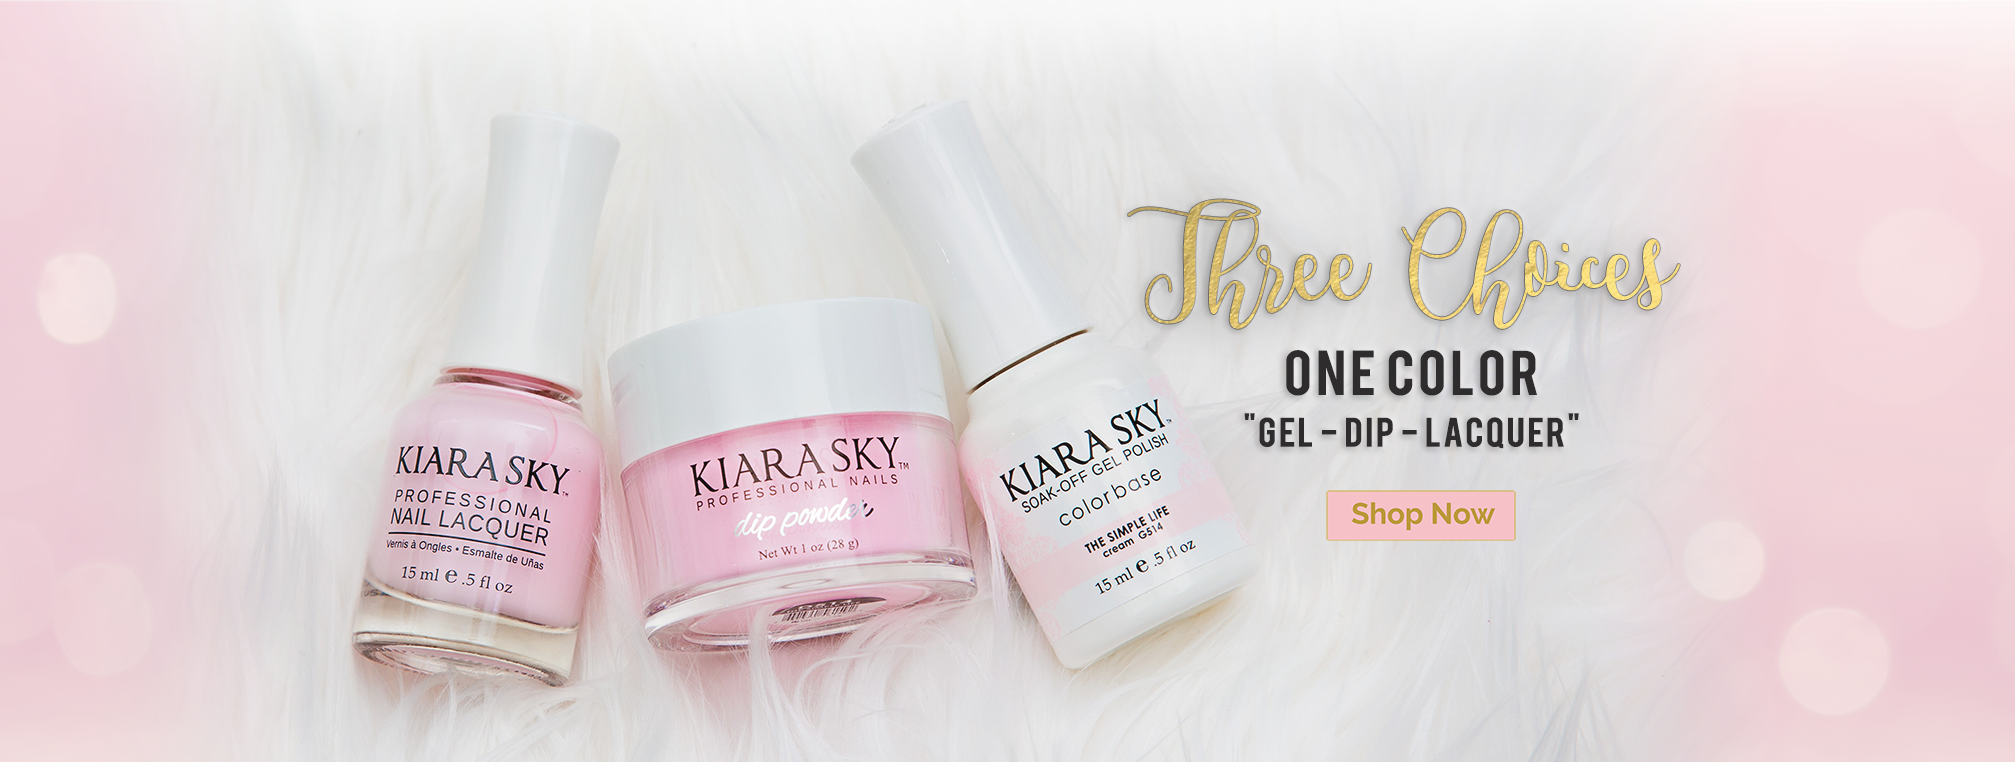 Kiara Sky Professional Nails | Powder Nail Polish